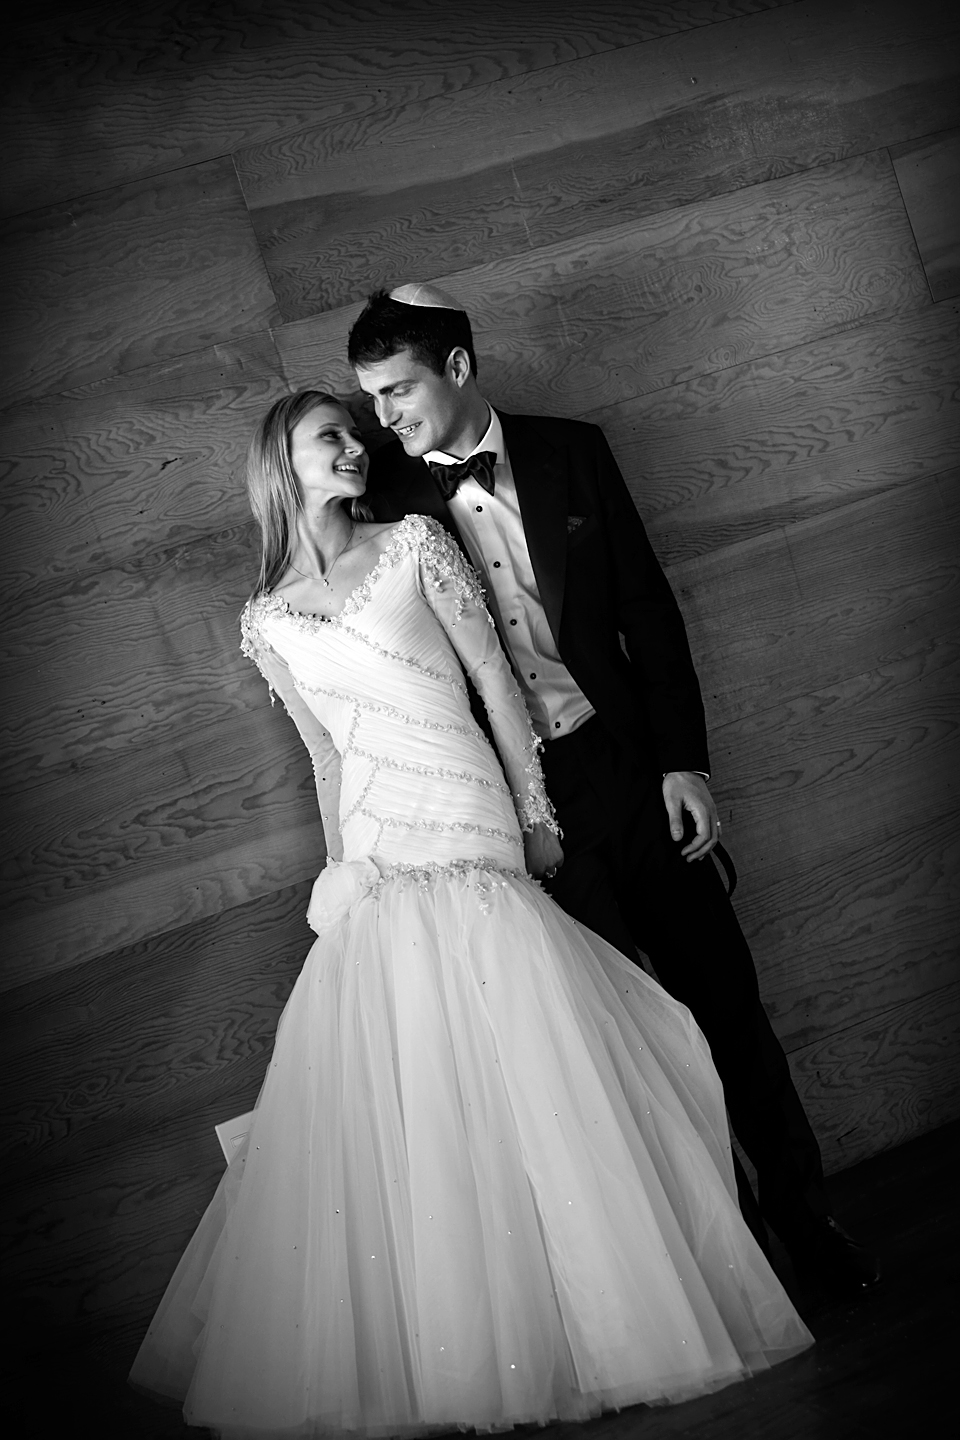 jewish-wedding-sandton-urban-tree-wedding-photographers-estilo-photography-best-wedding-photographers-johannesburg214.jpg